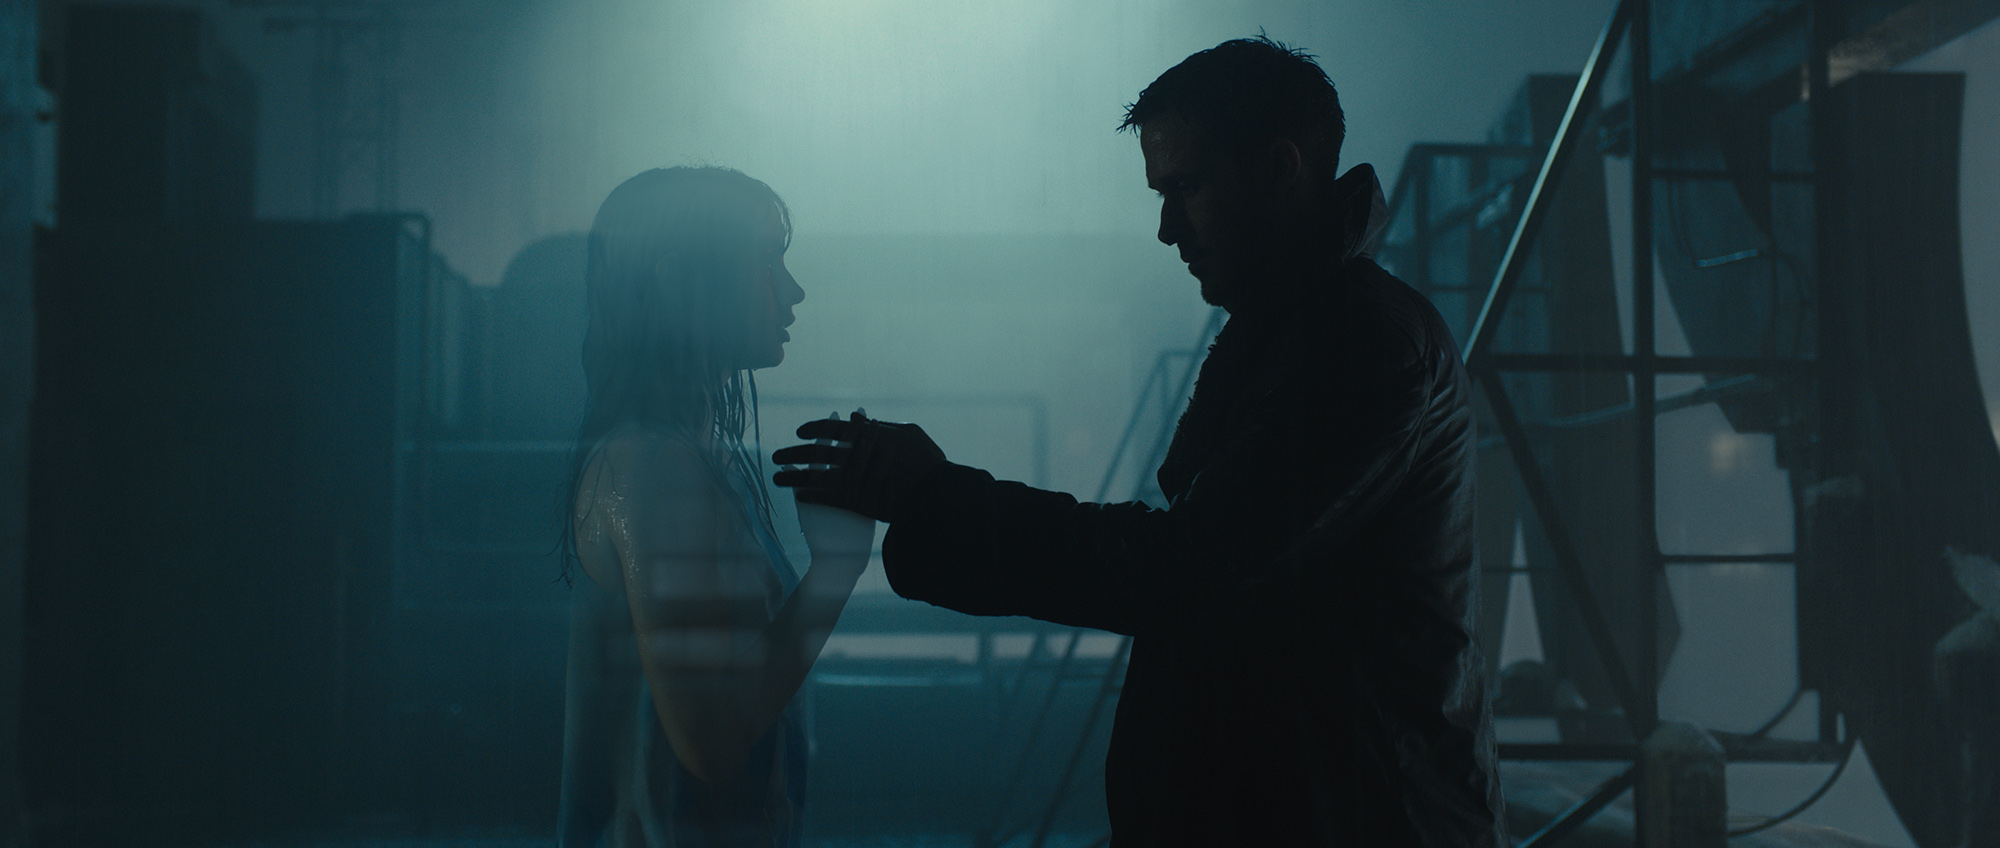 Joi experiencing rain for the first time, with K, in Blade Runner 2049 (©2017 ALCON ENTERTAINMENT, LLC., WARNER BROS. ENTERTAINMENT INC. AND COLUMBIA TRISTAR MARKETING GROUP, INC. ALL RIGHTS RESERVED.)